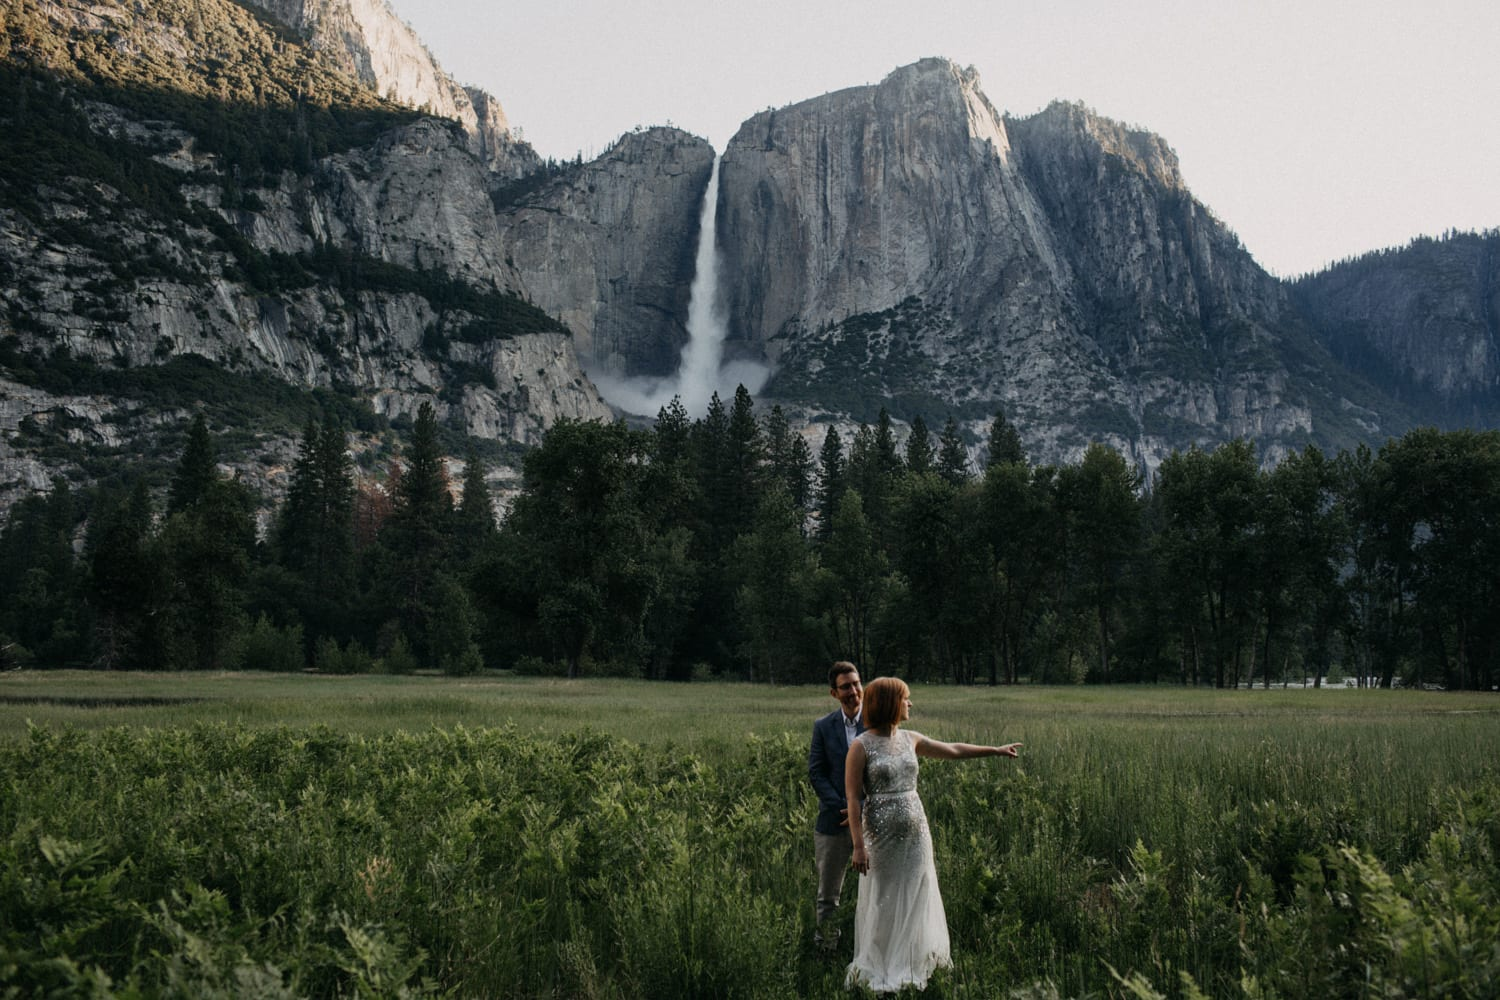 Anjali and Ben in a meadow in front of Yosemite Falls for their elopement